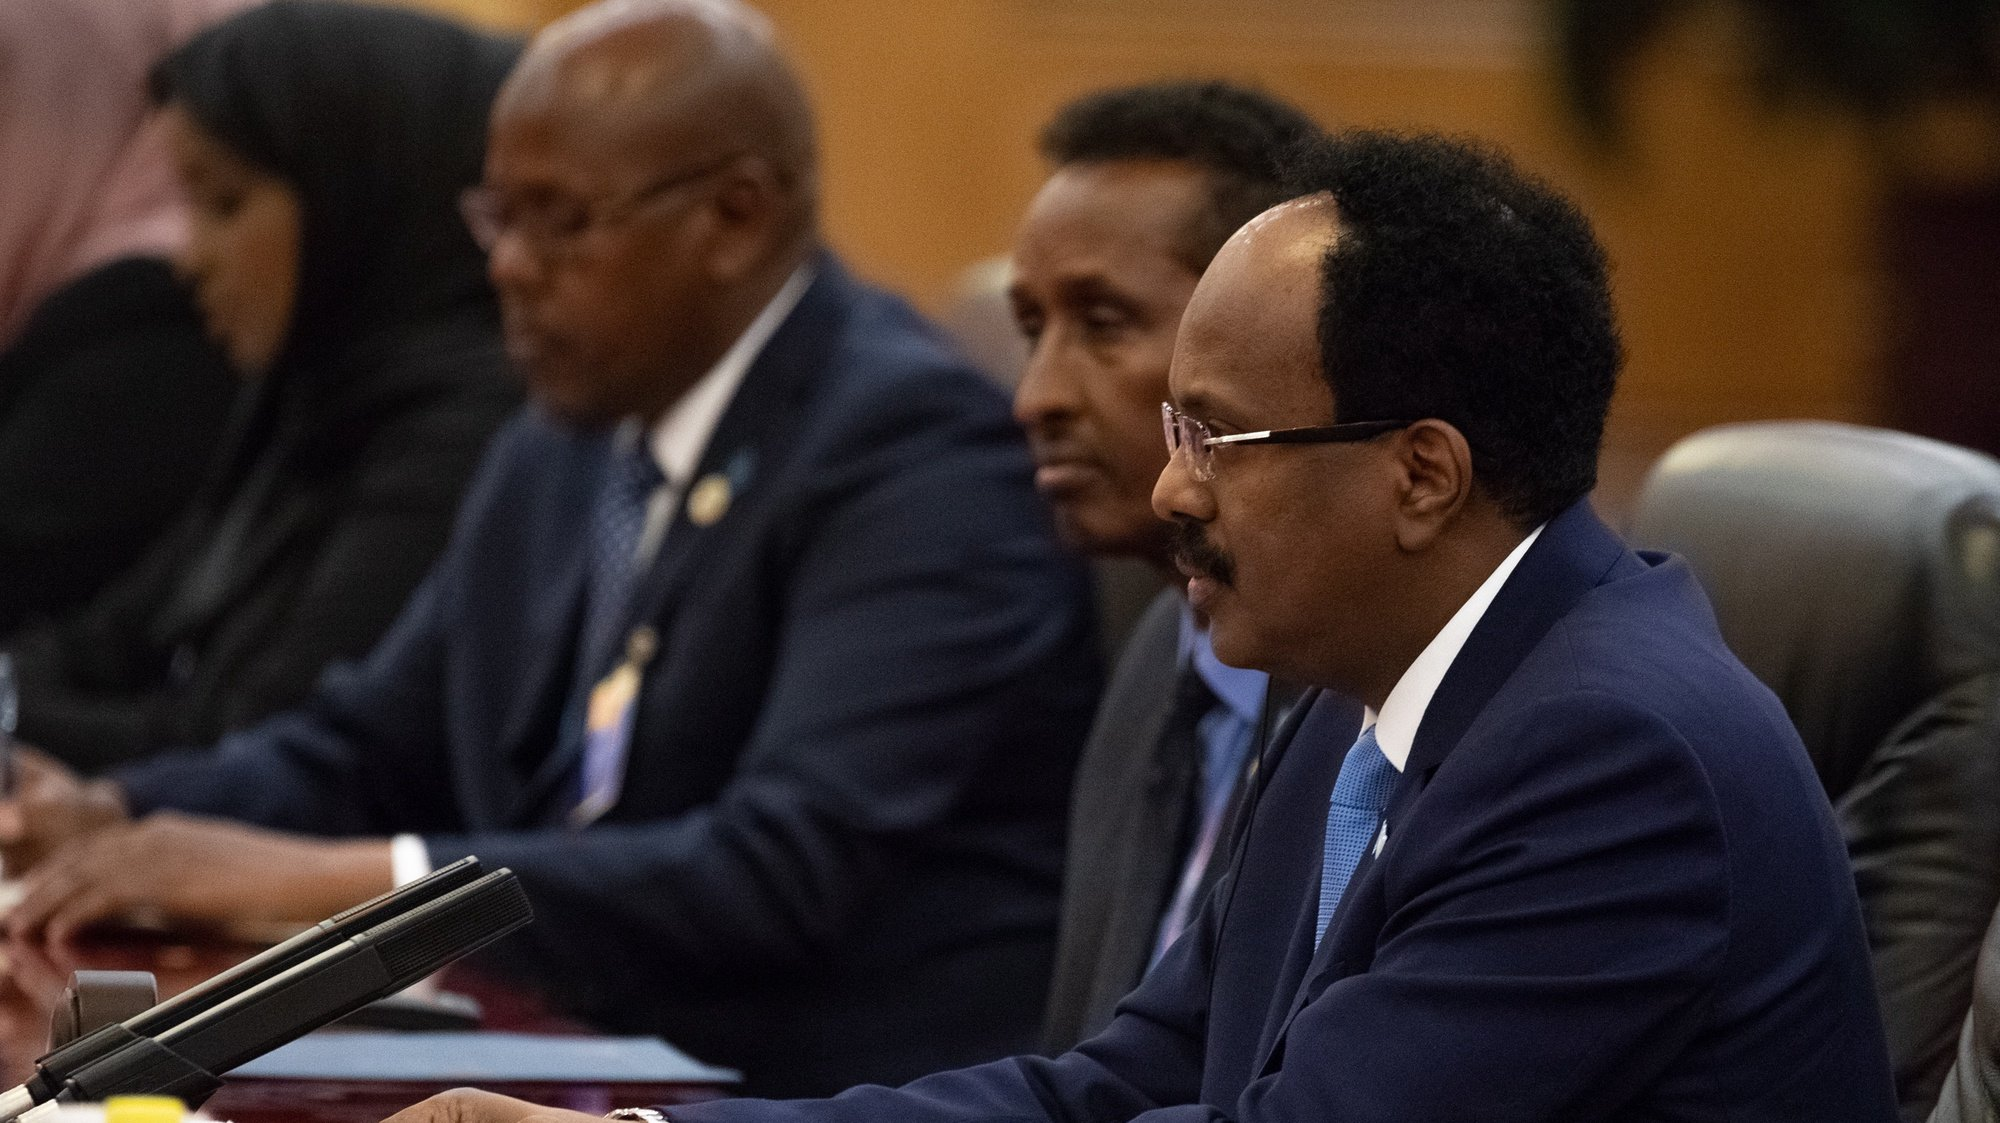 epa06985912 Somalia's President Mohamed Abdullahi Mohamed (R) during a bilateral meeting with China's President Xi Jinping (not pictured) at the Great Hall of the People in Beijing, China, 31 August 2018. Mohamed Abdullahi Mohamed is in China for the Forum on China-Africa Cooperation which will be held from 03 to 04 September in Beijing.  EPA/ROMAN PILIPEY / POOL